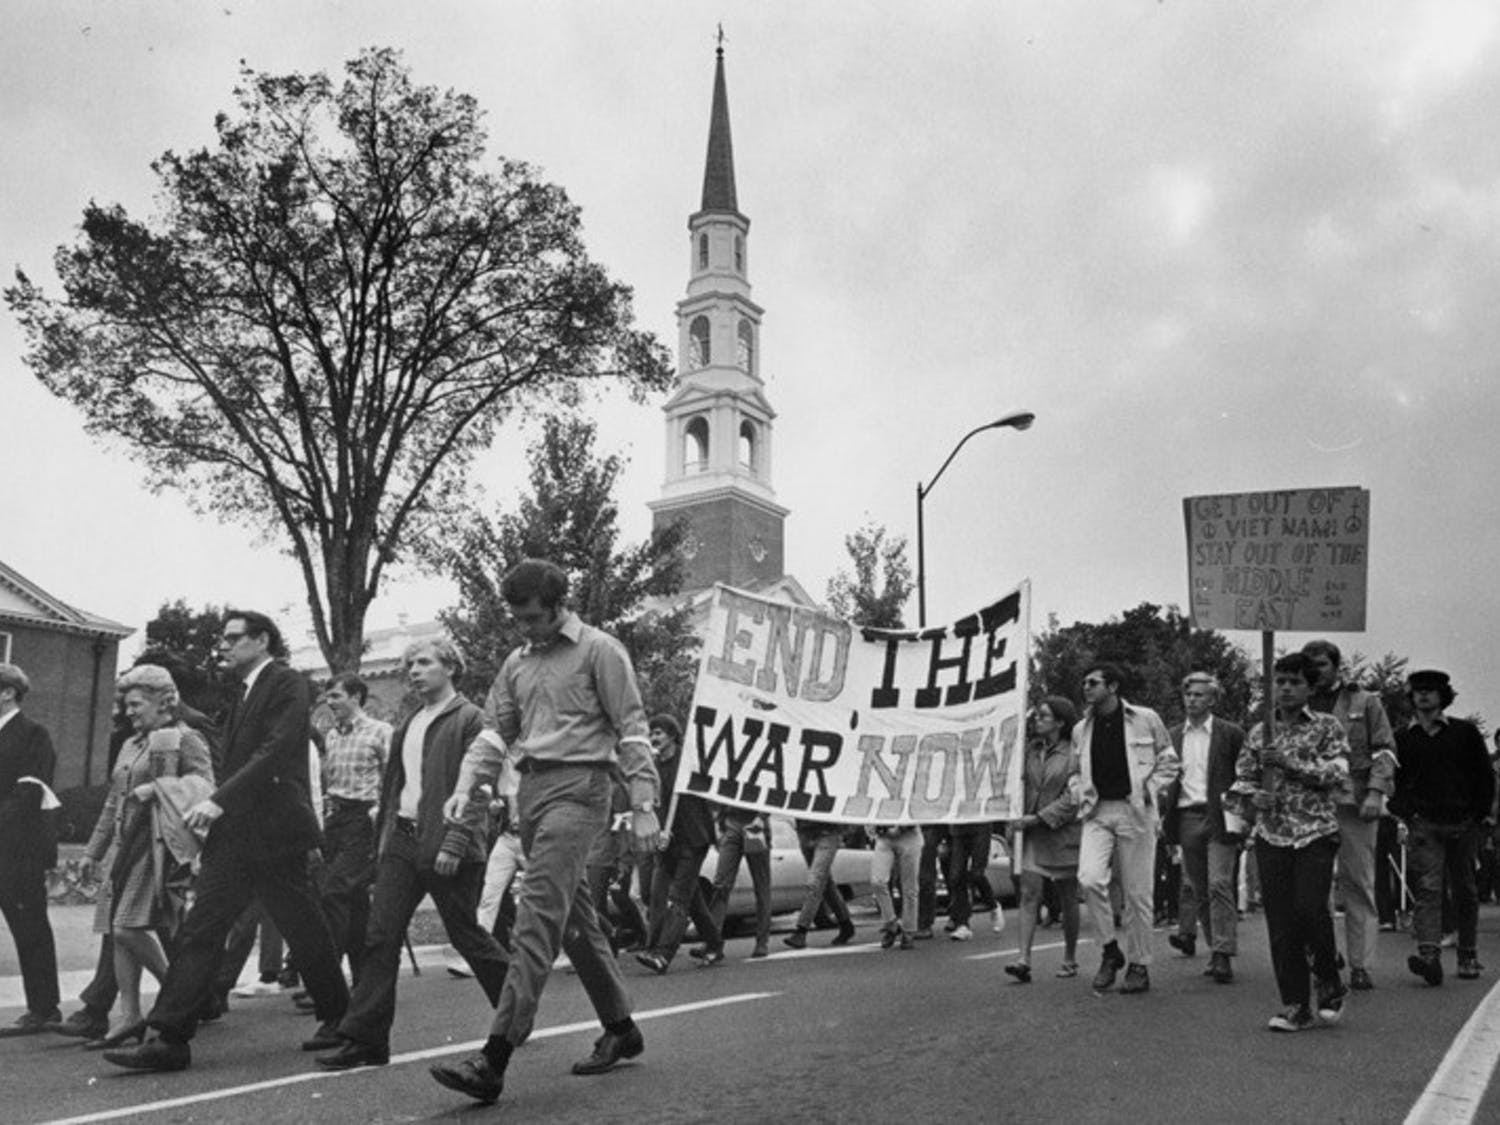 Activists participate in anti-war demonstrations on Franklin Street in October of 1969. Photo courtesy of Wilson Library Archives.